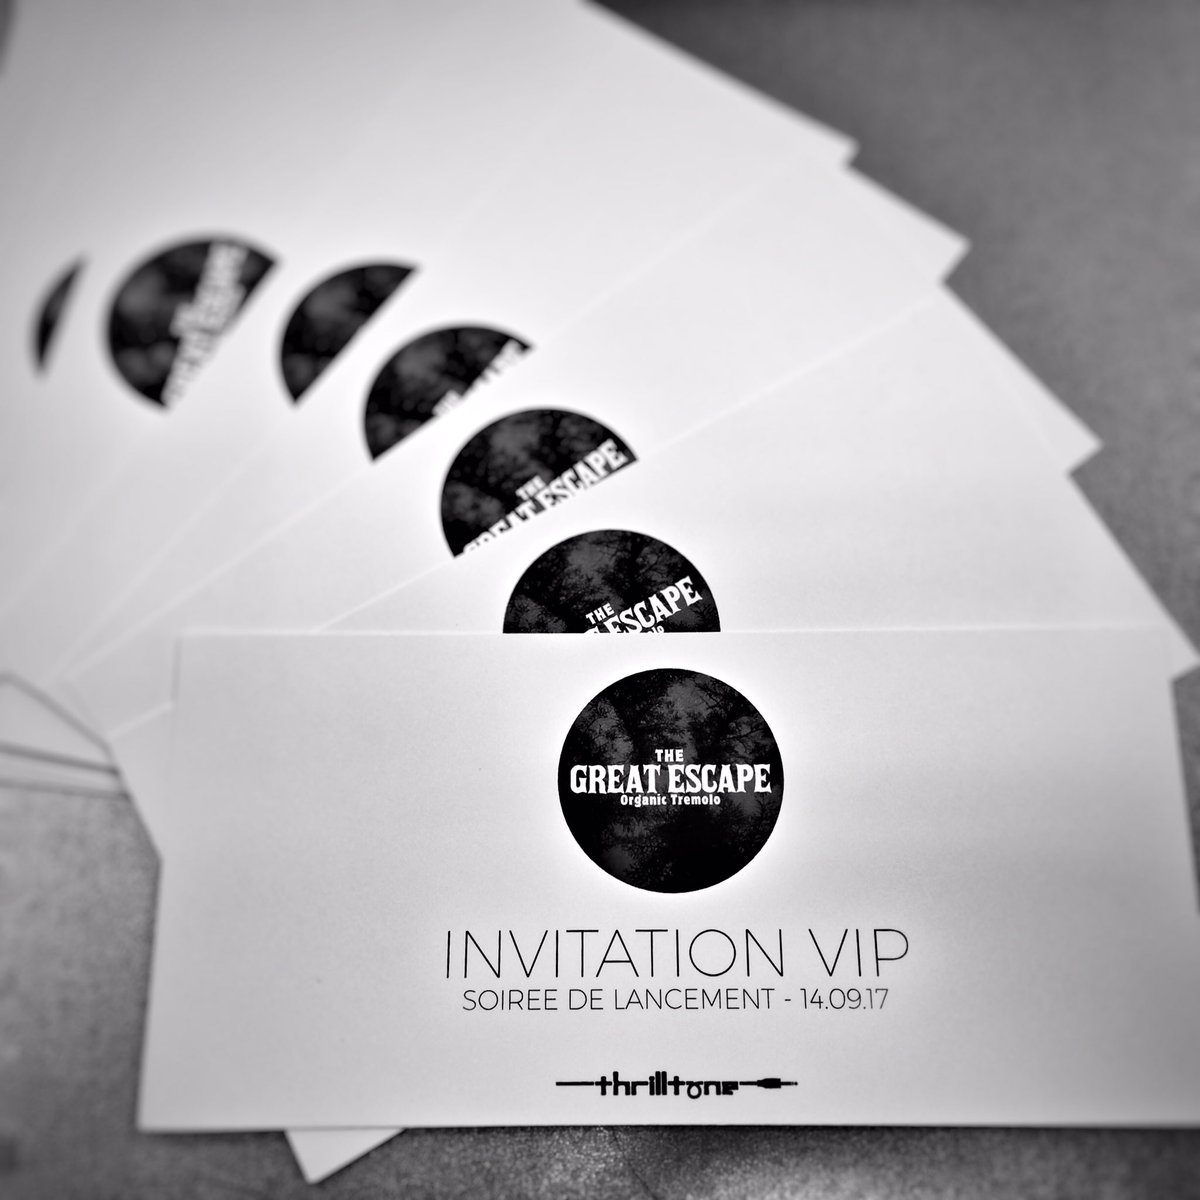 Sending postcards...  #TheGreatEscape #ReleaseParty #Sept14th #Strasbourg #VIPpass #ProductRelease #Tremolo #effectpedals #madeinFrance<br>http://pic.twitter.com/nbcJ8wXucp